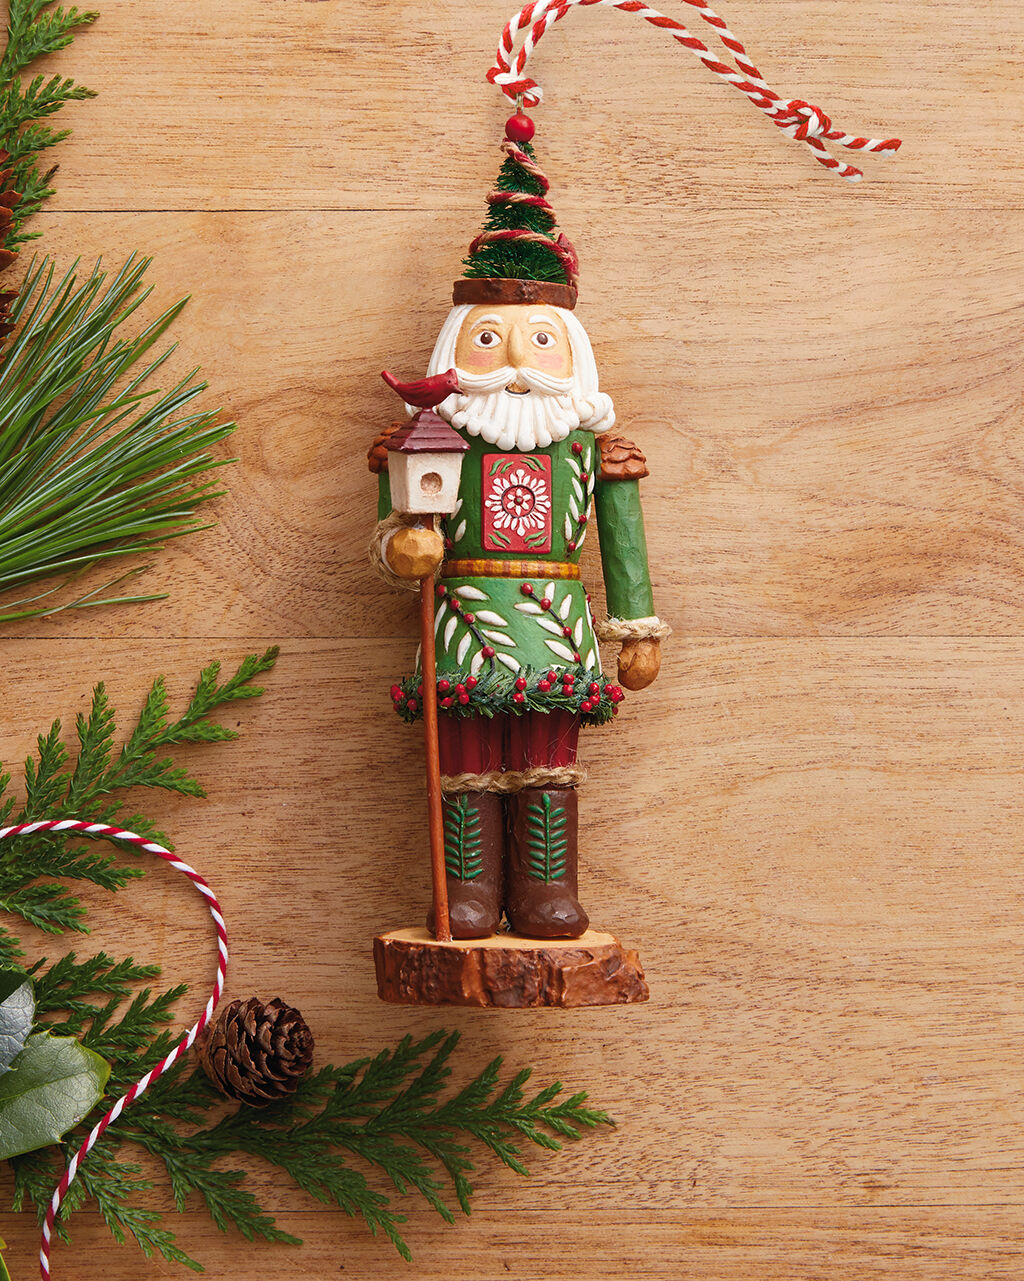 145 433 father christmas stock photos, vectors, and illustrations are available royalty-free.